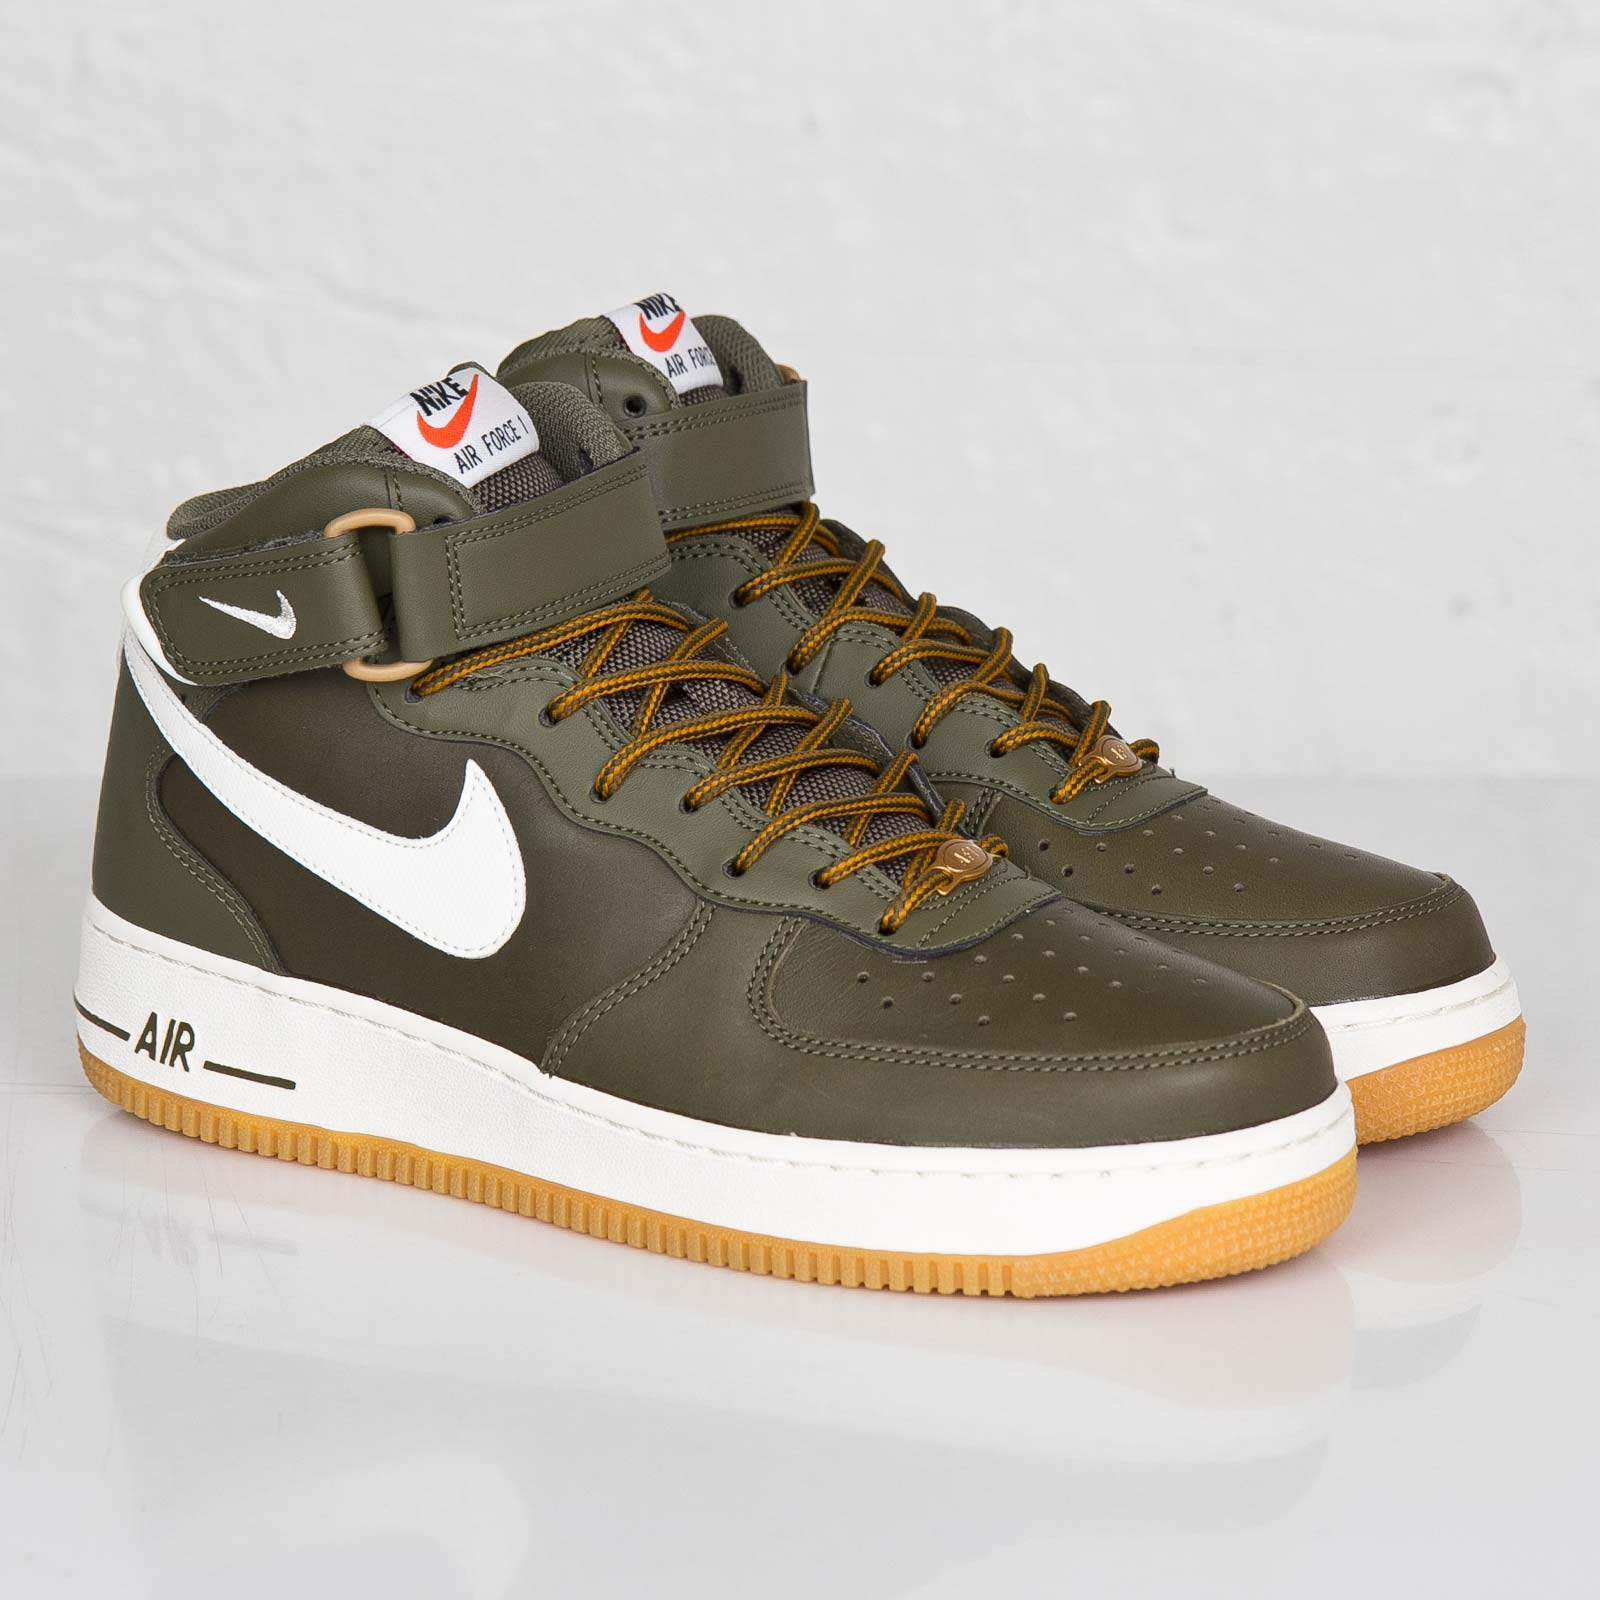 a5567a3469083f Nike Air Force 1 Mid 07 - 315123-203 - Sneakersnstuff